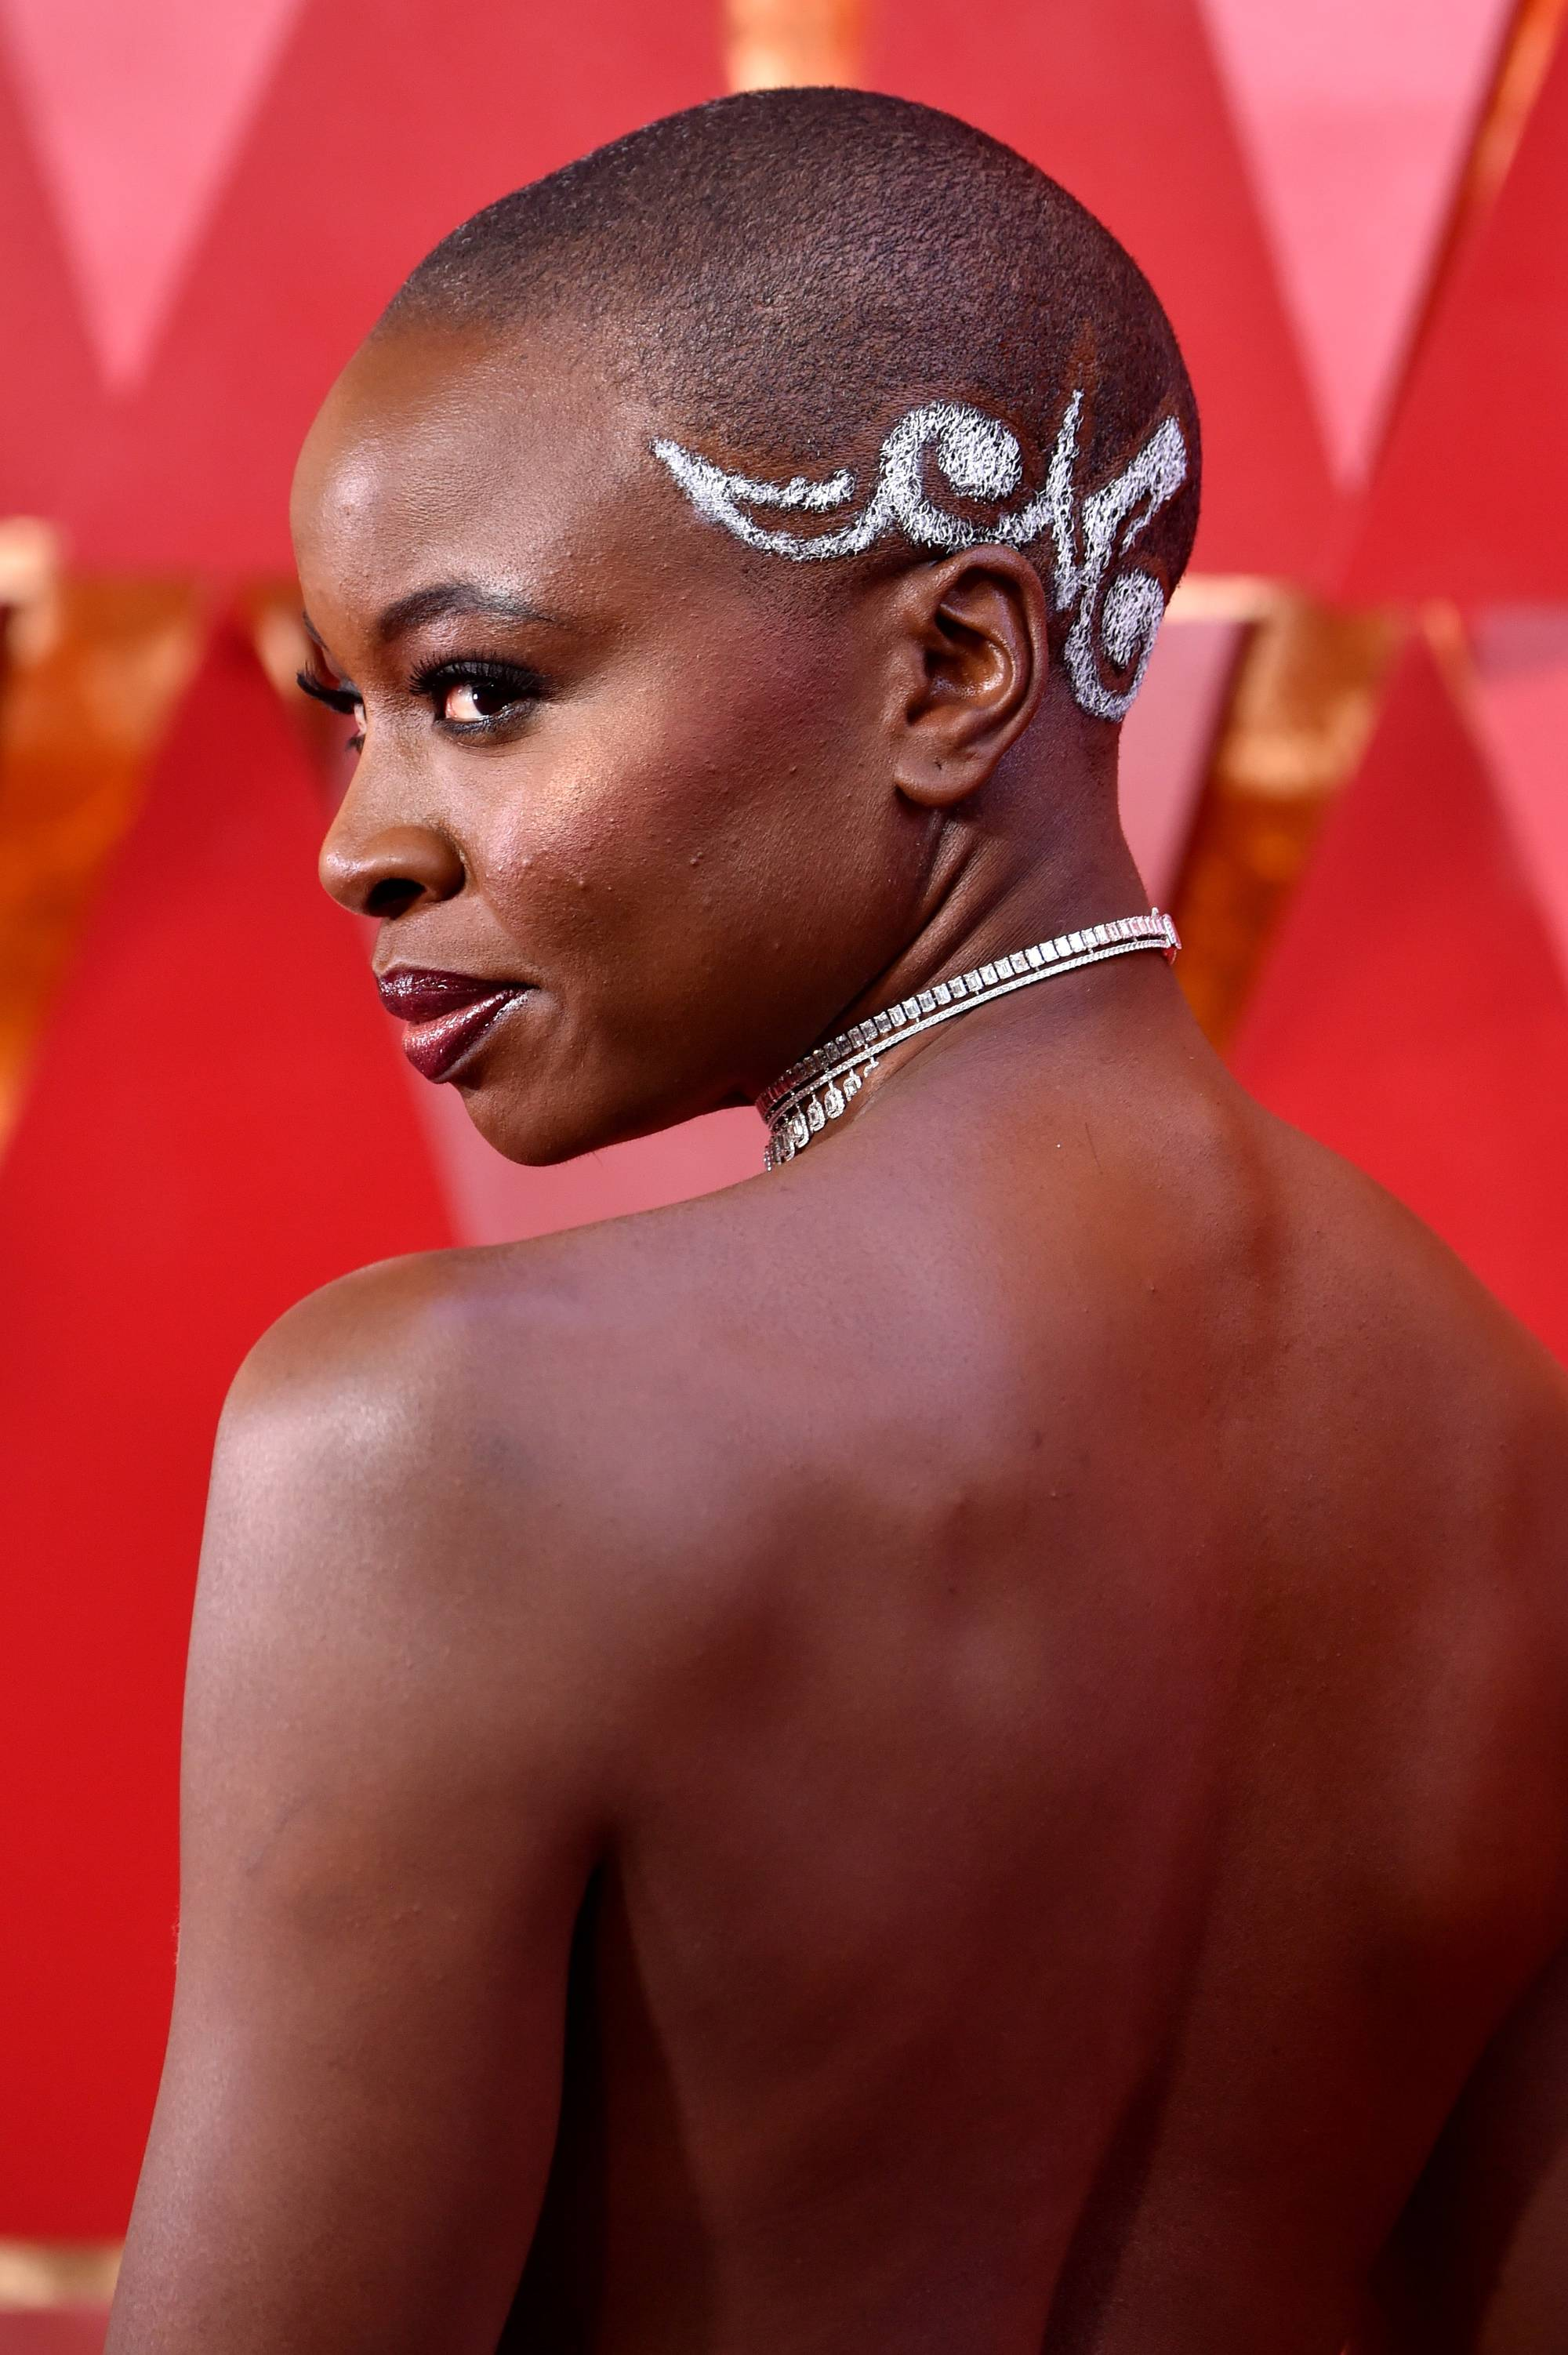 black panther actress danai gurira at the oscars 2018 with a spray painted metallic white design on her buzz cut